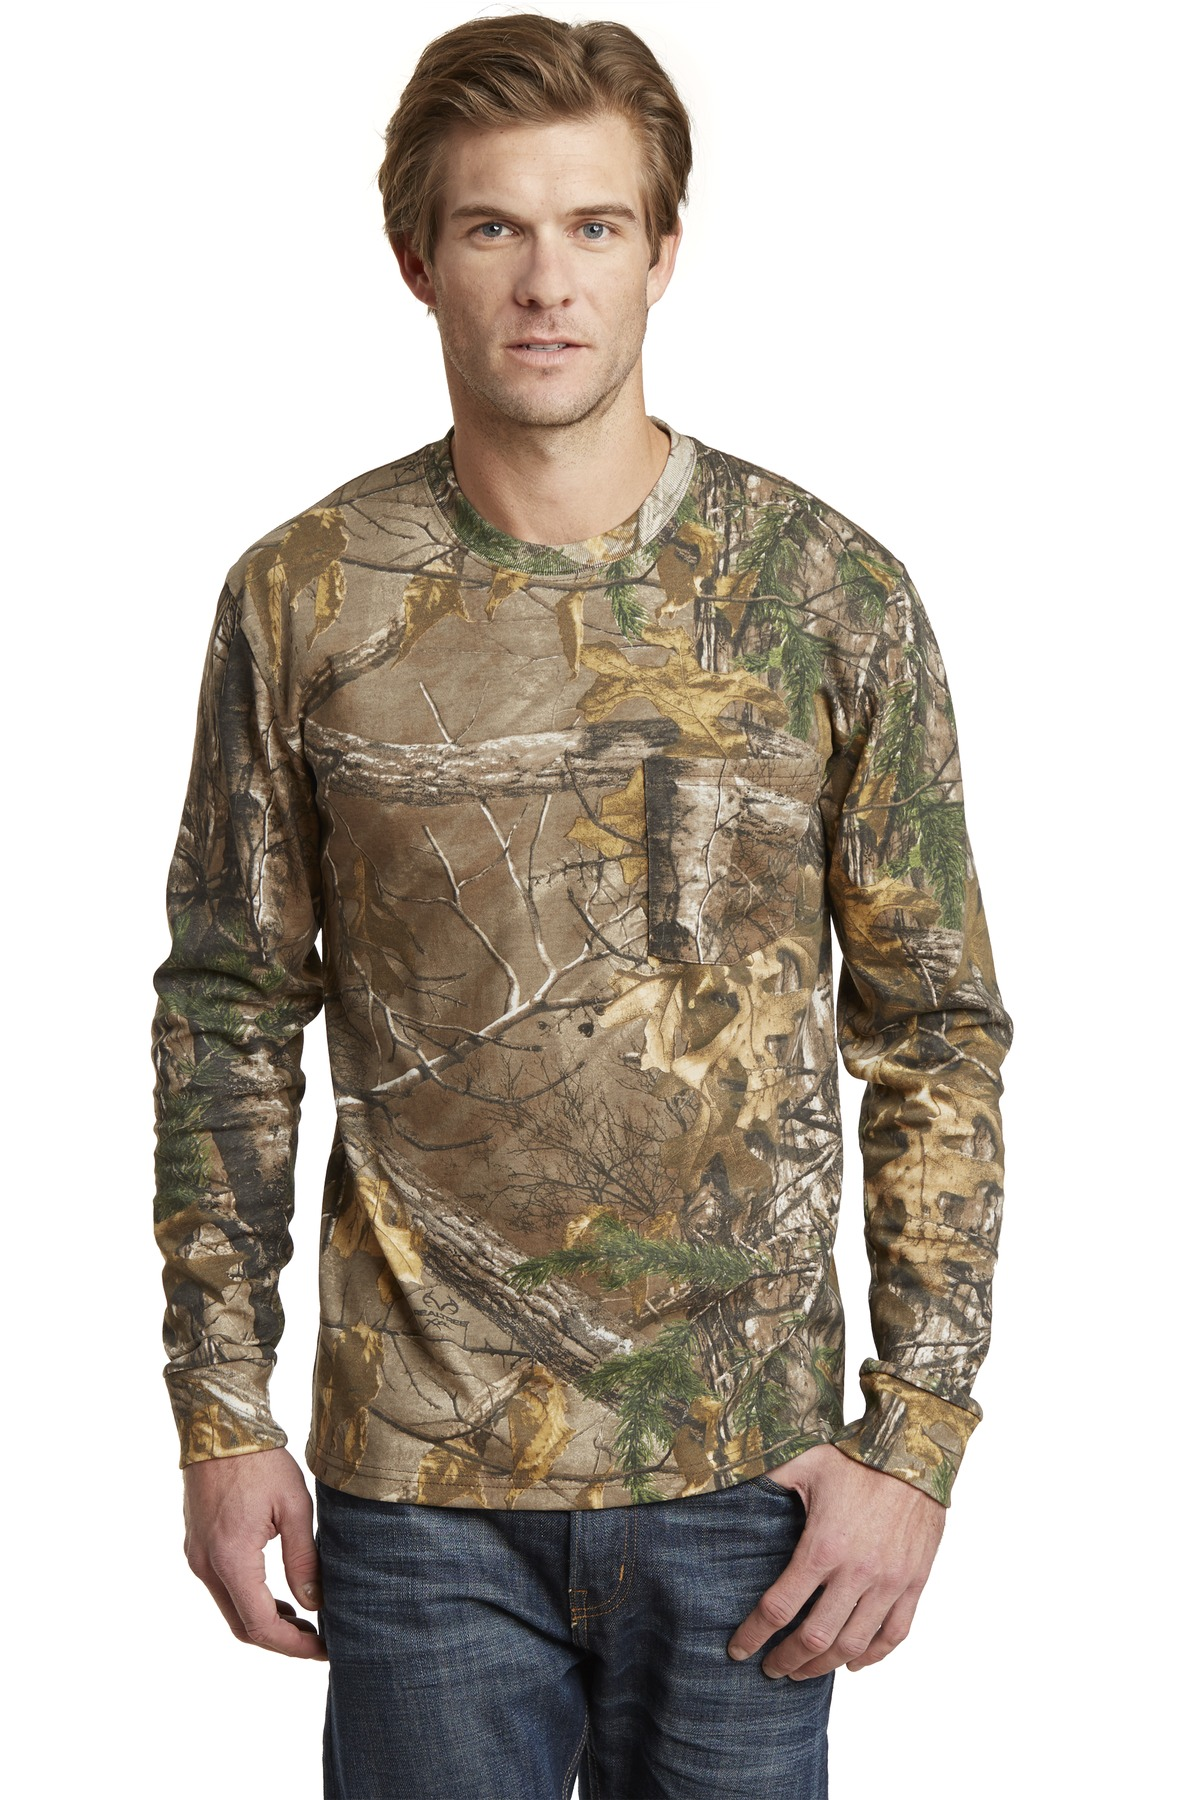 Russell Outdoors ™  Realtree ®  Long Sleeve Explorer 100% Cotton T-Shirt with Pocket. S020R - Realtree Xtra